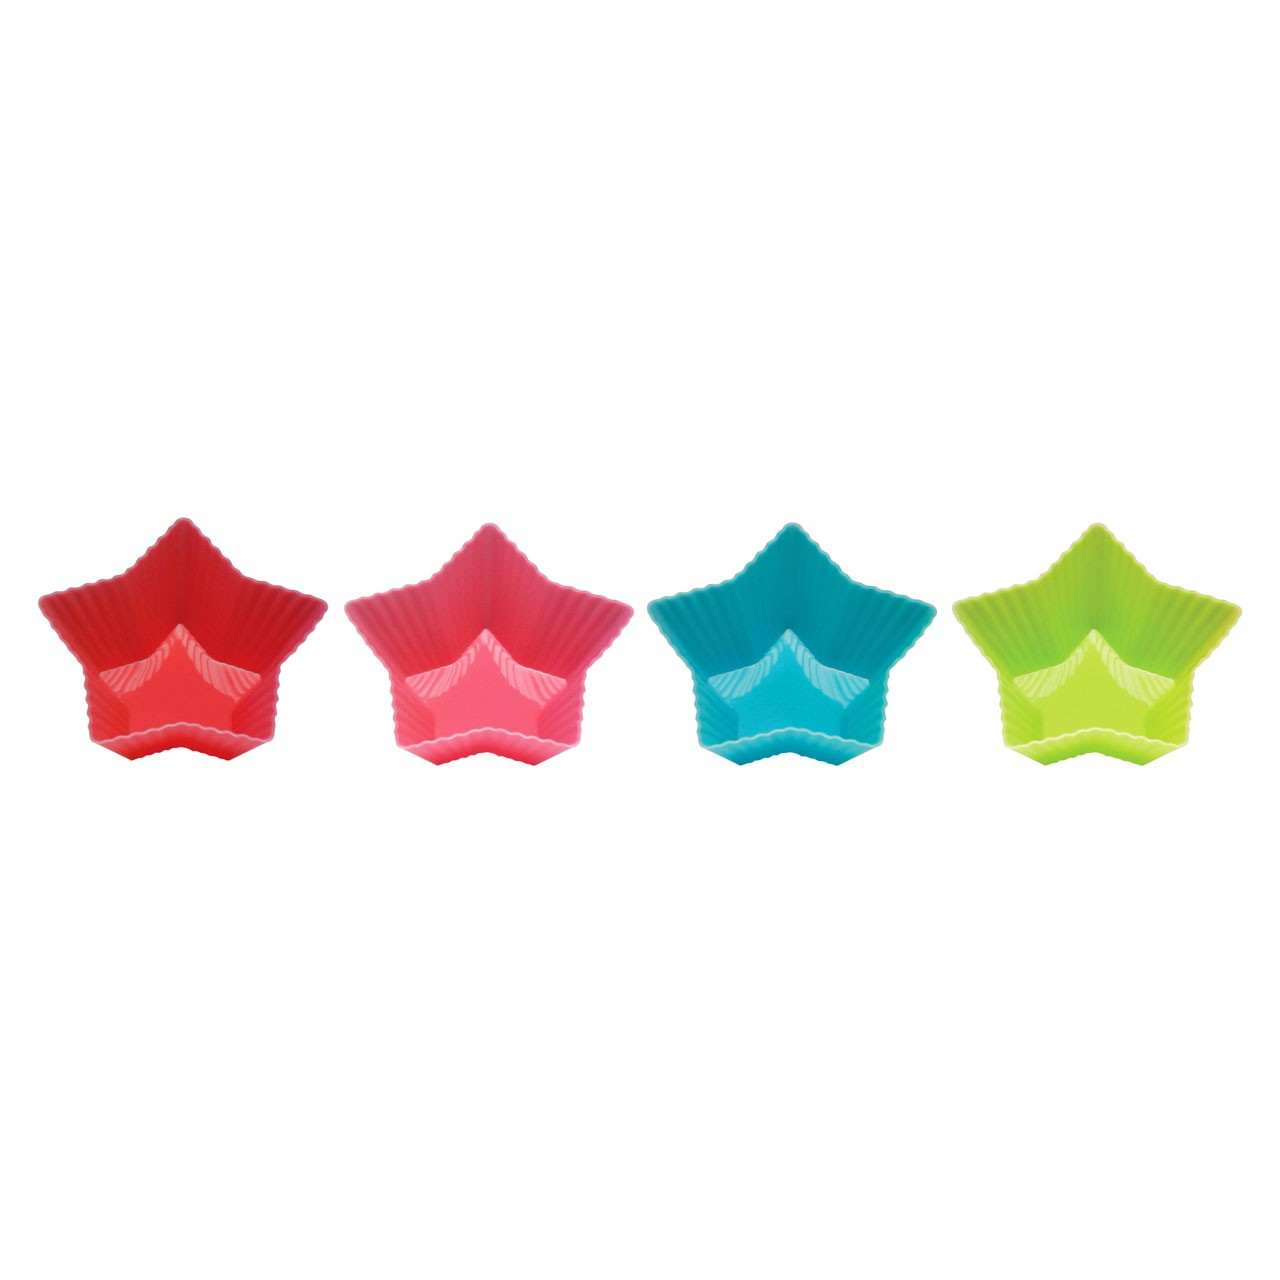 Star Moulds Set of 4 Silicone